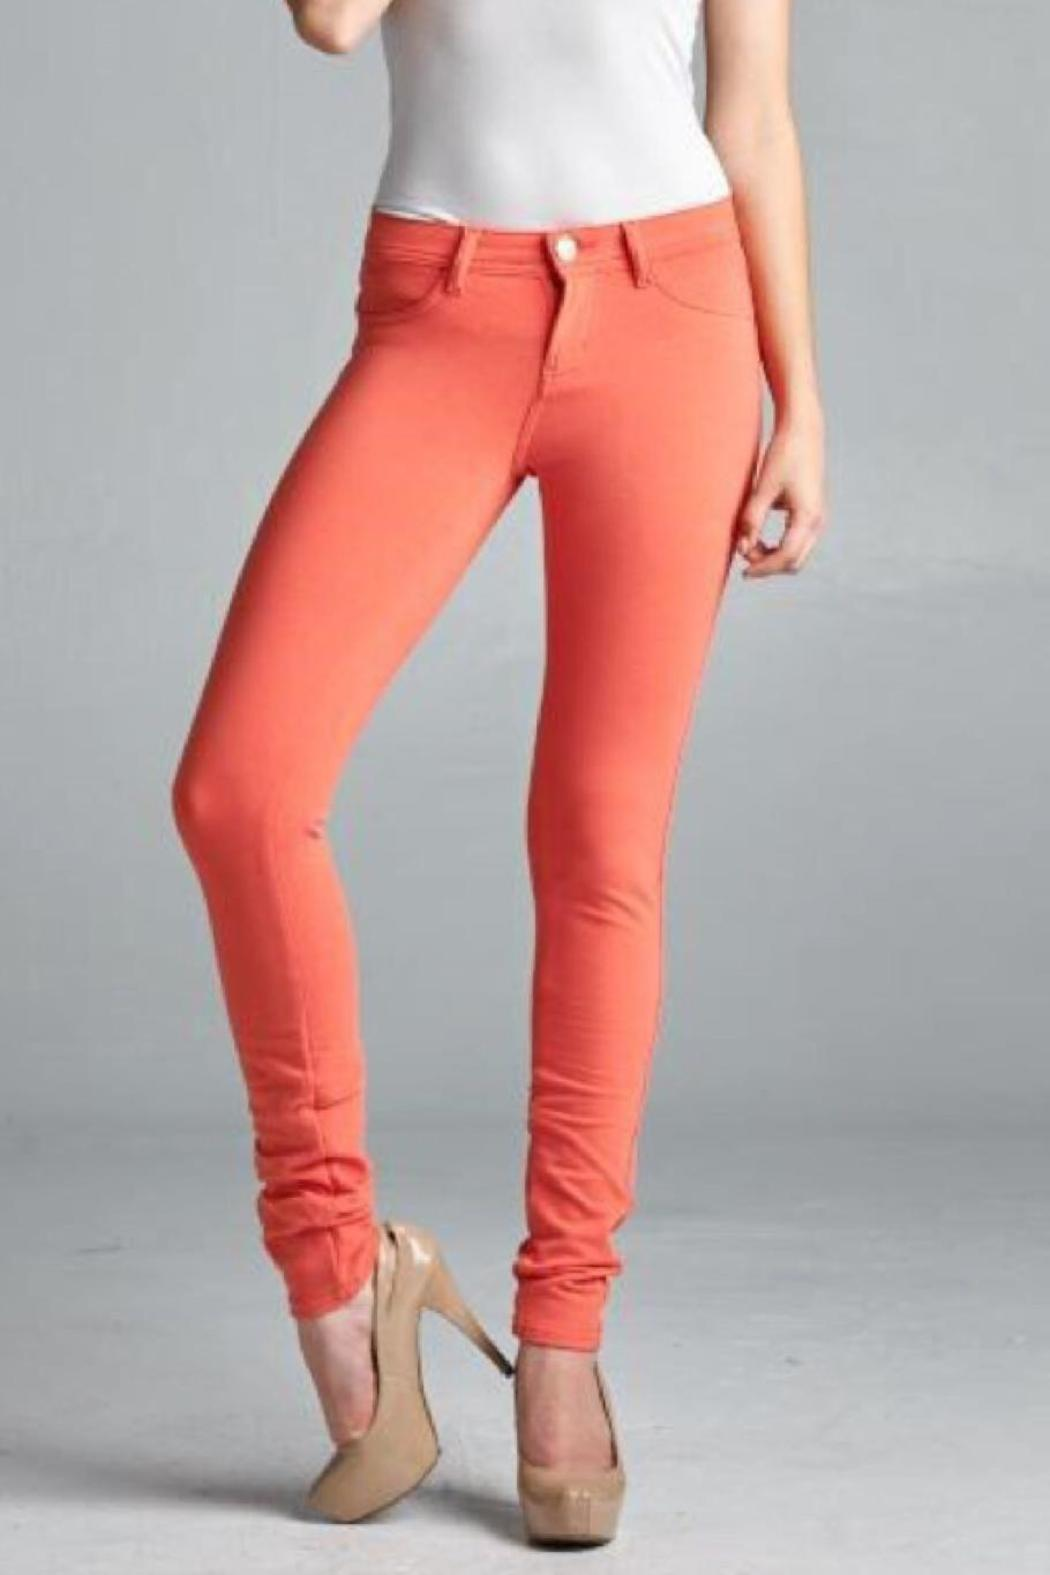 JW Maxx Coral Jeggings - Front Cropped Image - JW Maxx Coral Jeggings From Mississippi By EmiBeth's Boutique